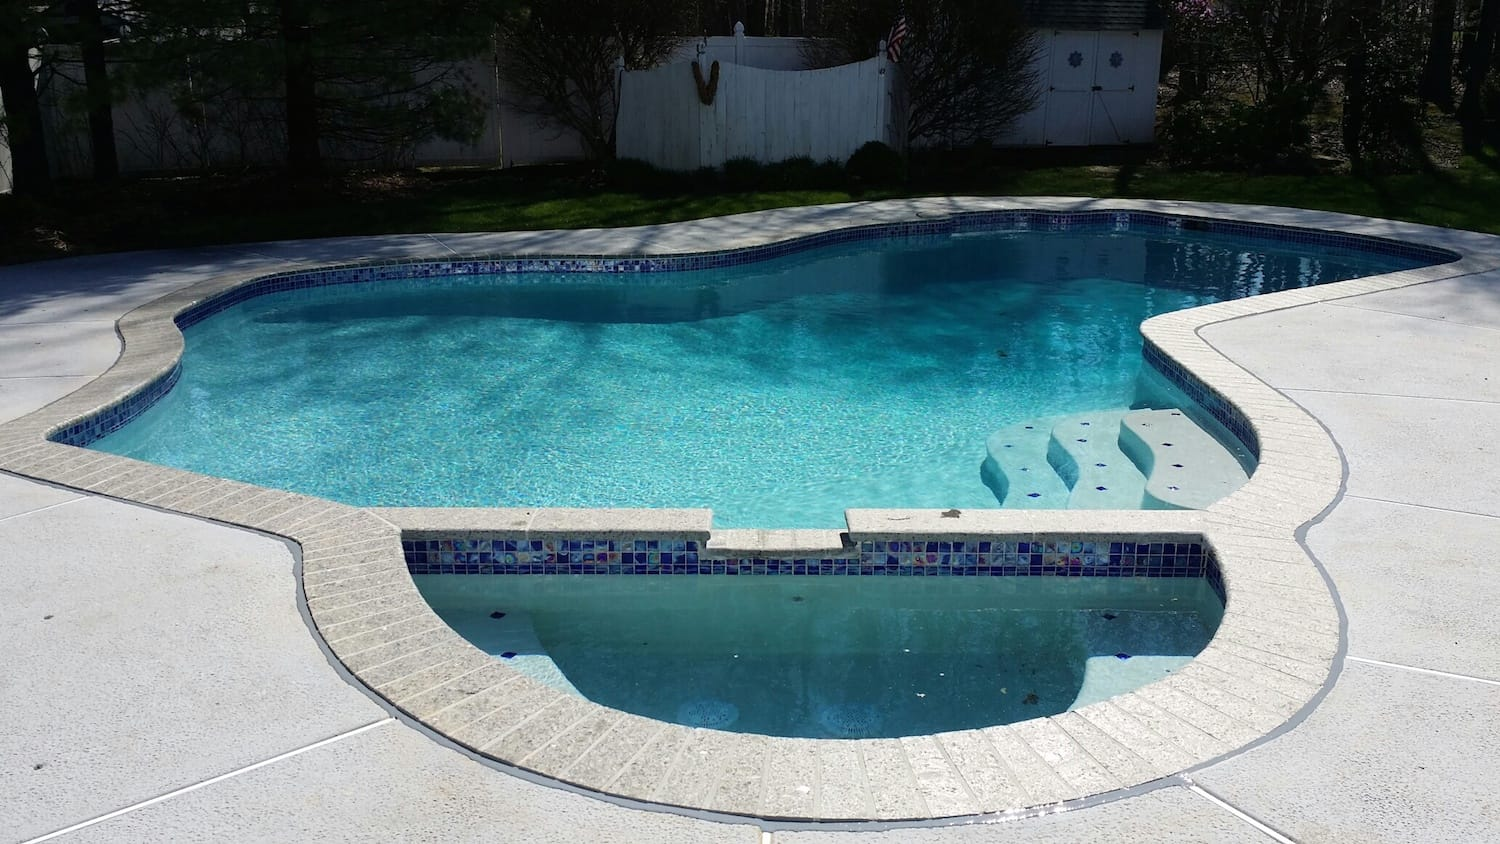 luna-quartz-martinique-pool-finish-6